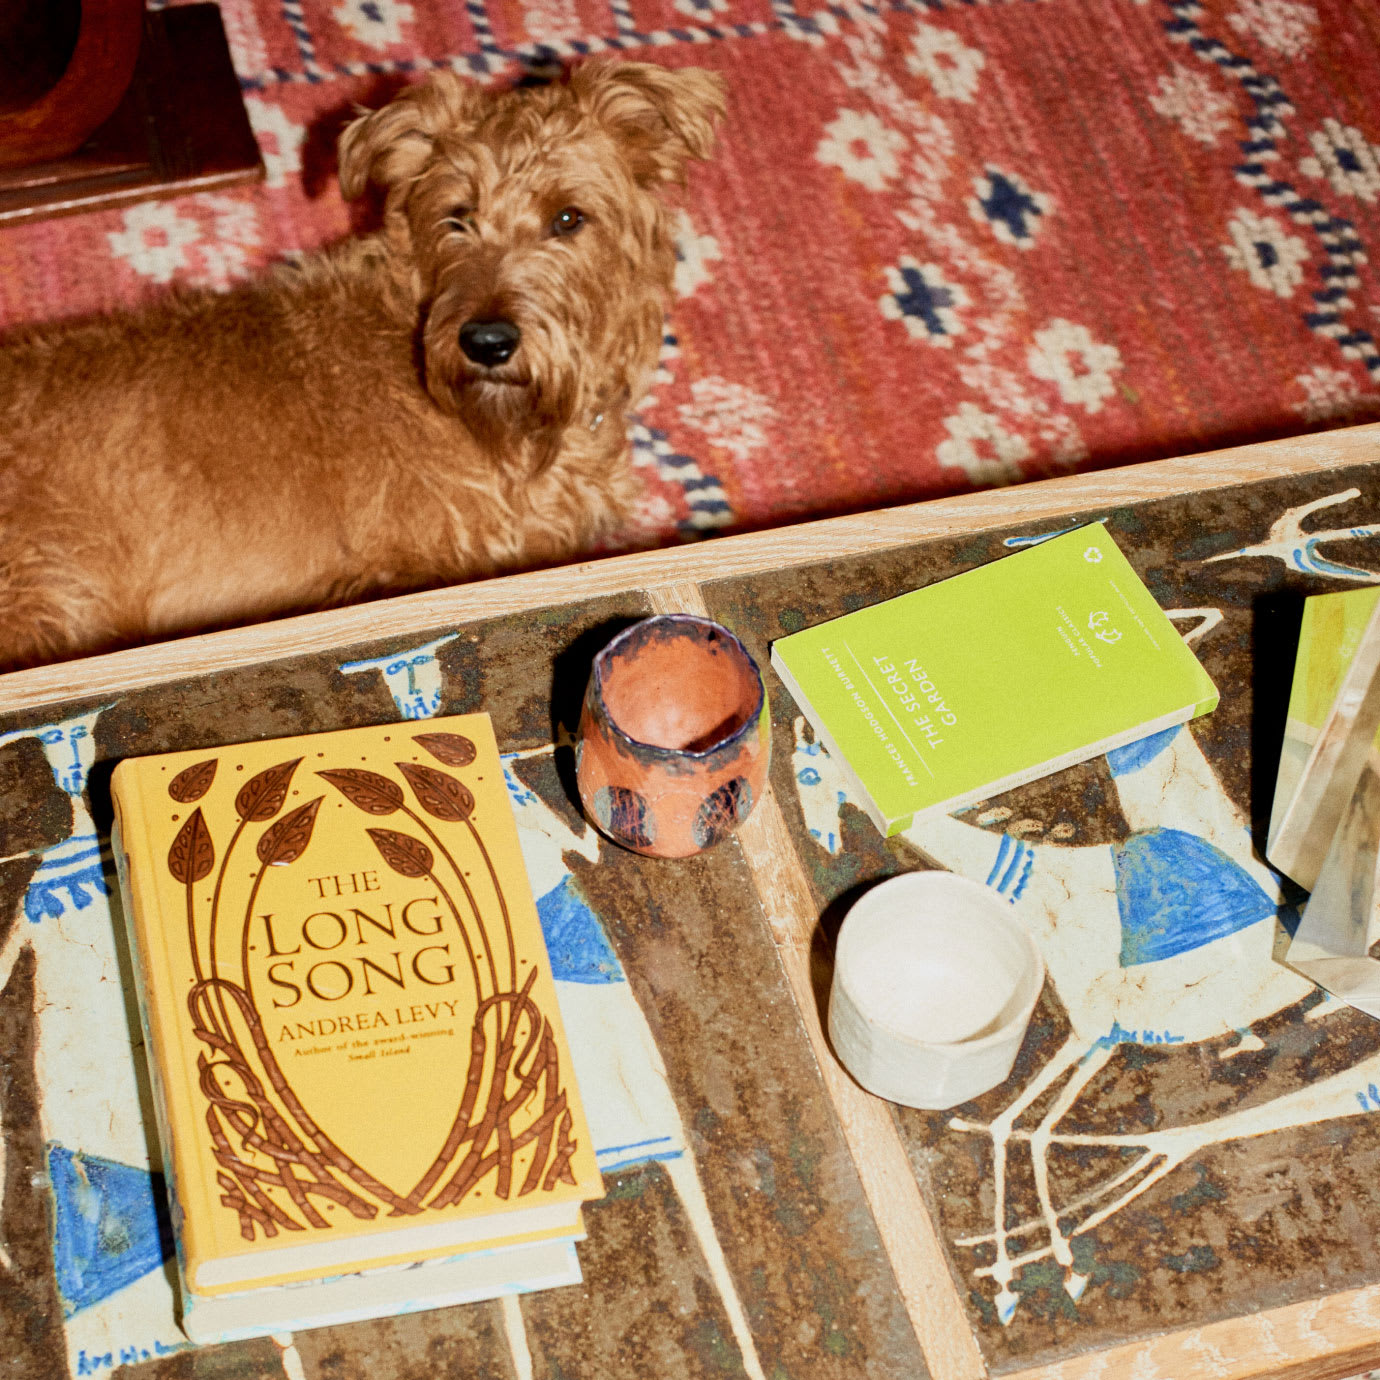 A dog on the floor next to a coffee table.